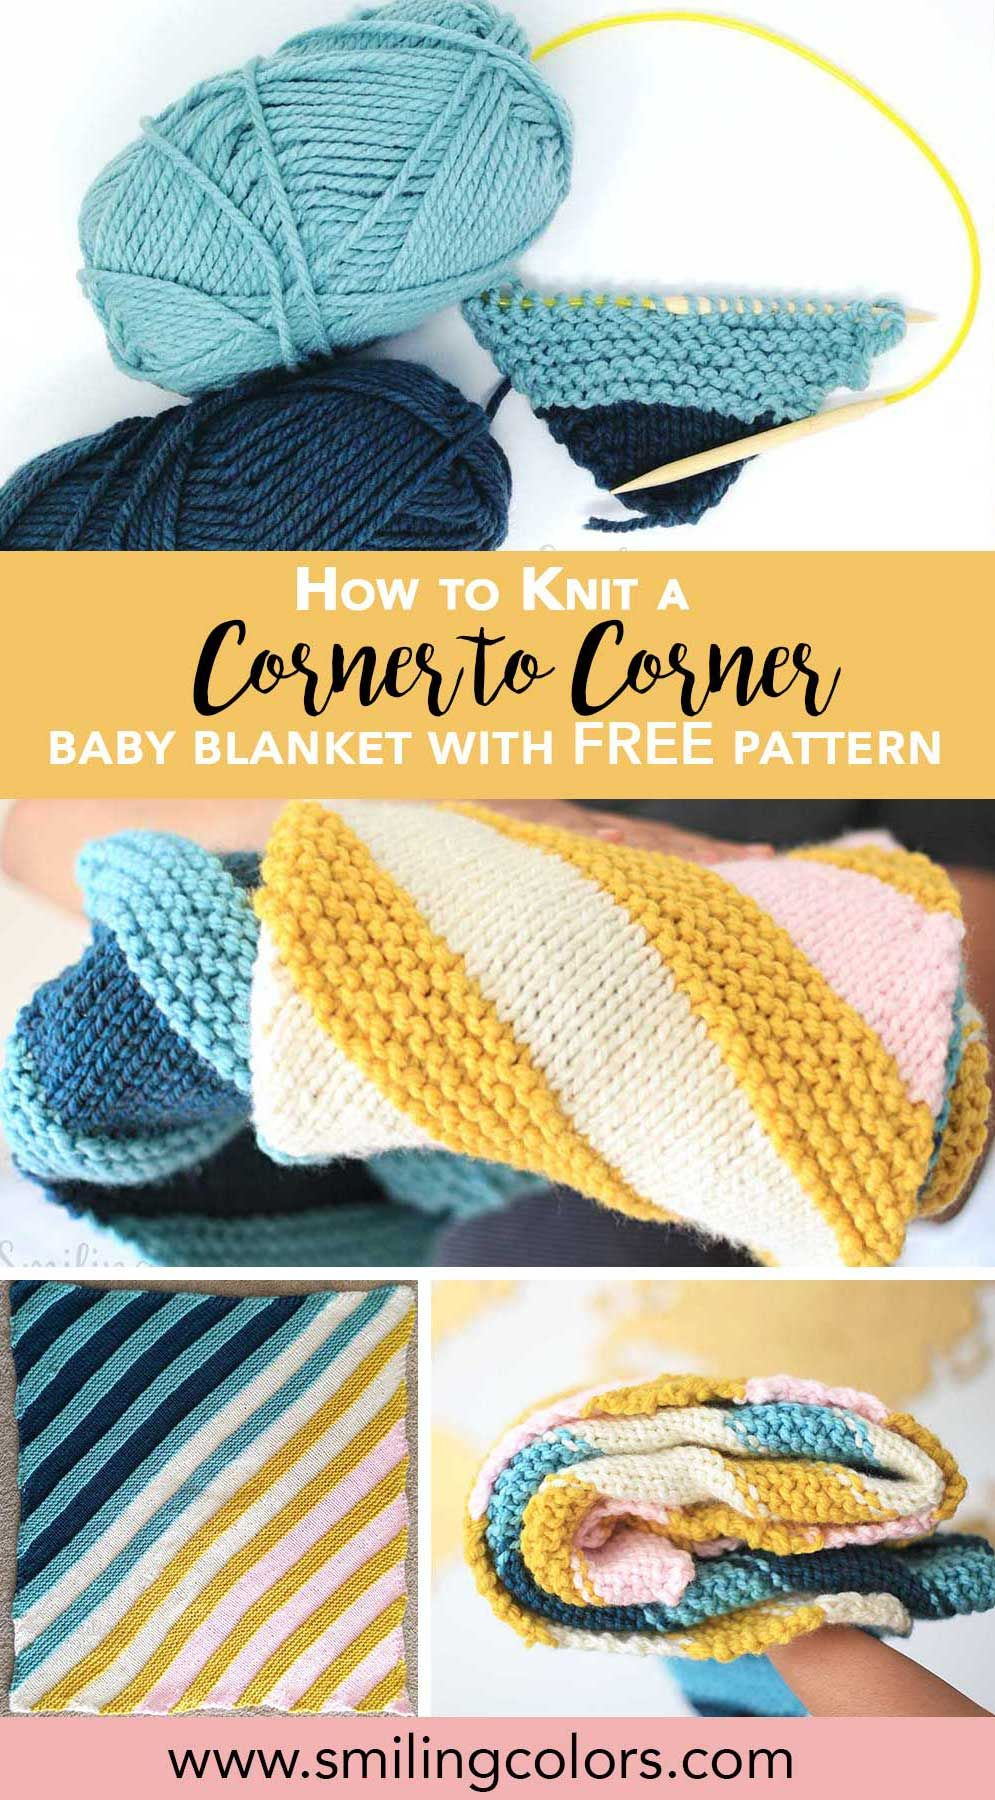 Learn how to knit this easy corner to corner baby blanket with learn how to knit this easy corner to corner baby blanket with free pattern also bankloansurffo Image collections